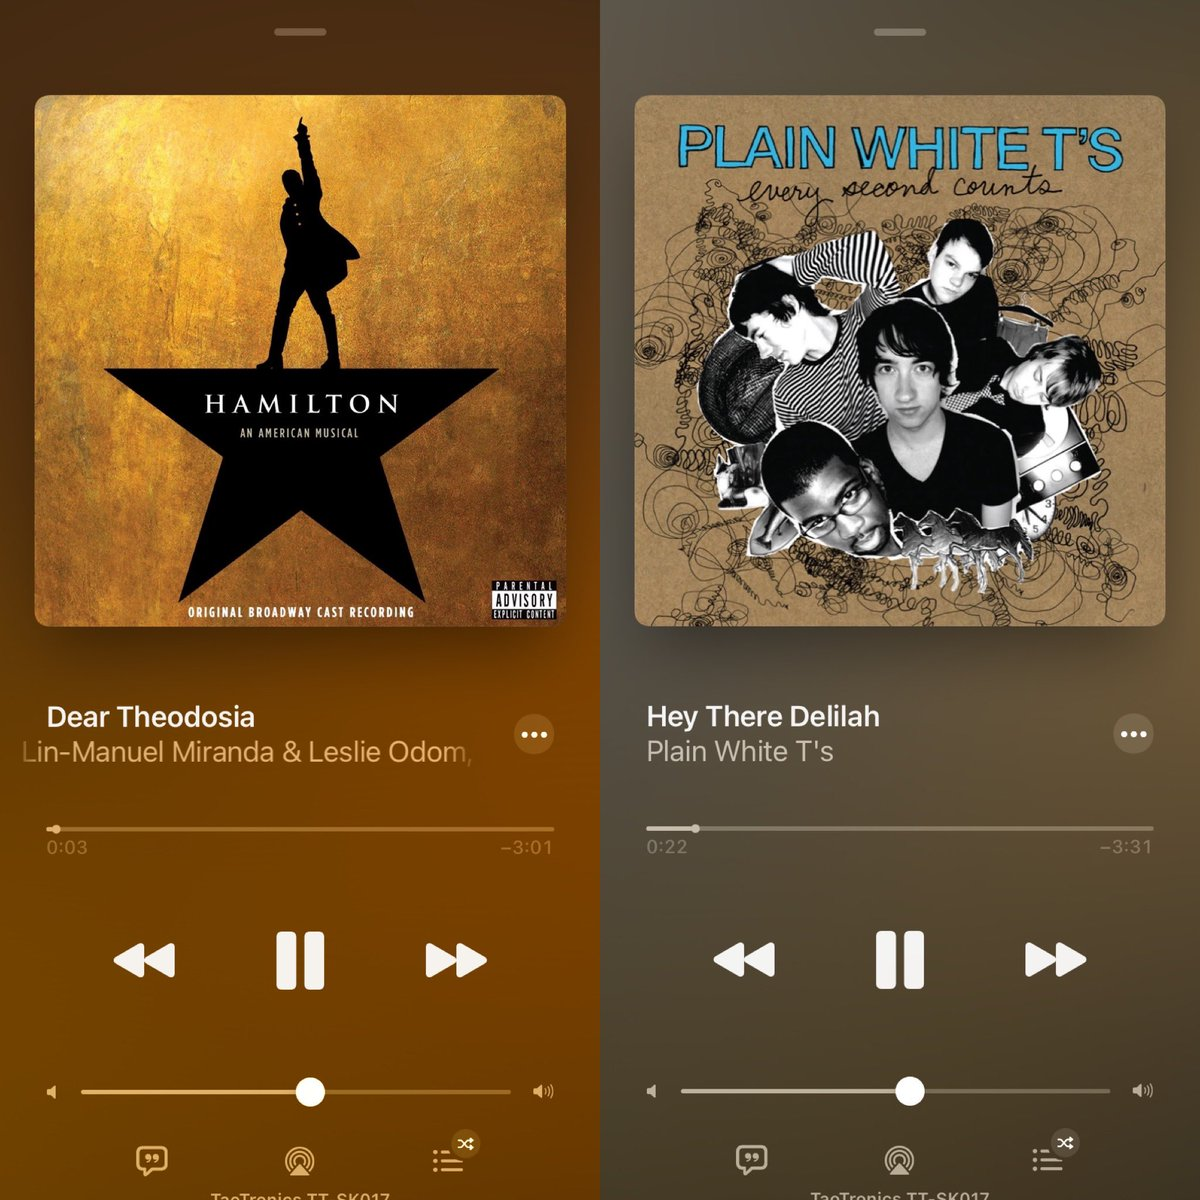 Another reason why @HamiltonMusical is one of the best musicals ever written!  Let's make that a thread!   What other songs conversation can you make?  @plainwhitets #Hamilton #hamiltonmusical #DisneyPlus